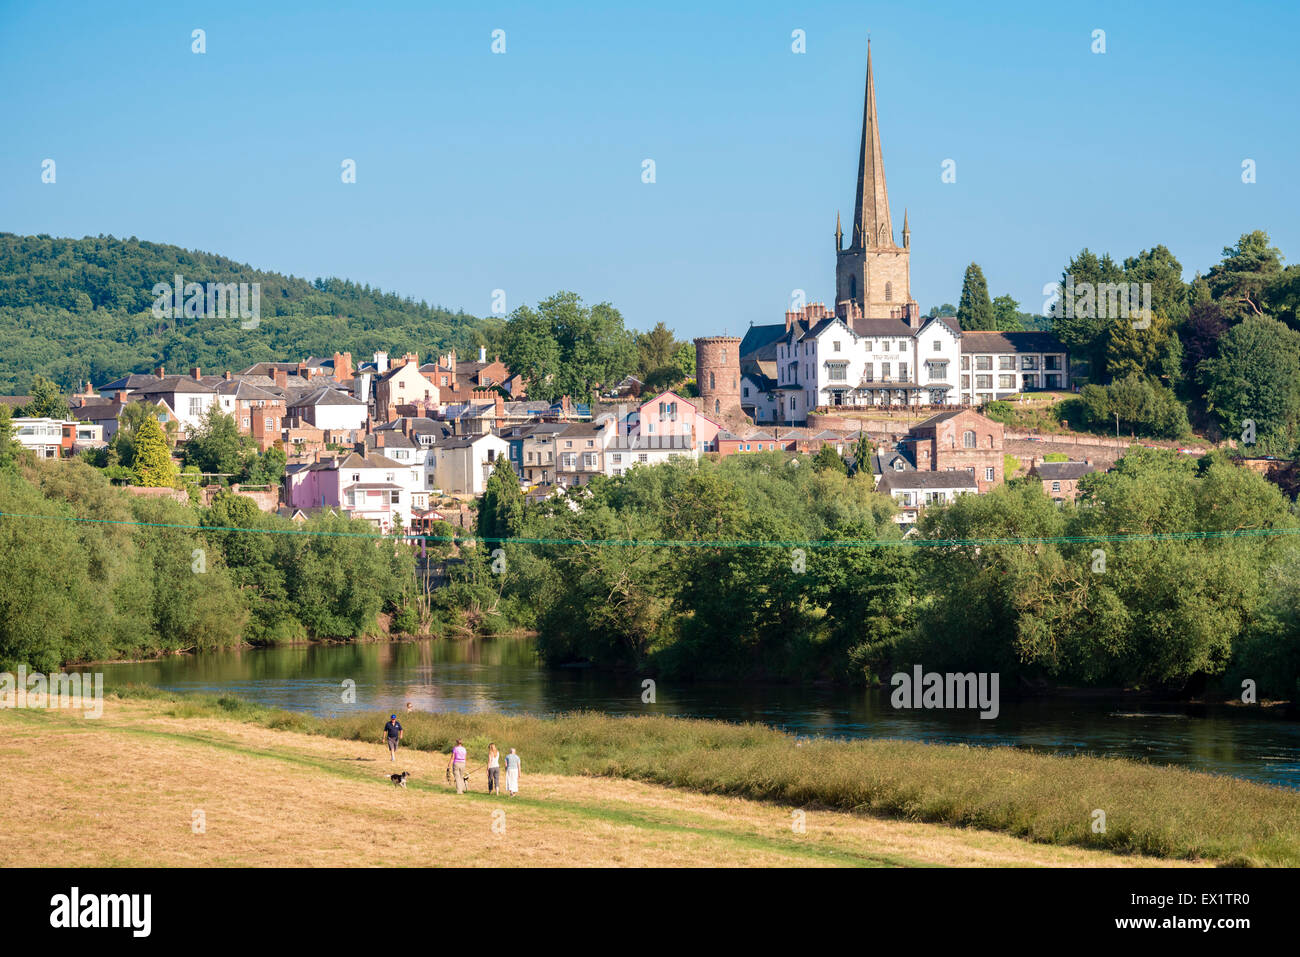 Ross on Wye town, Herefordshire, UK. People walking along the River Wye. - Stock Image